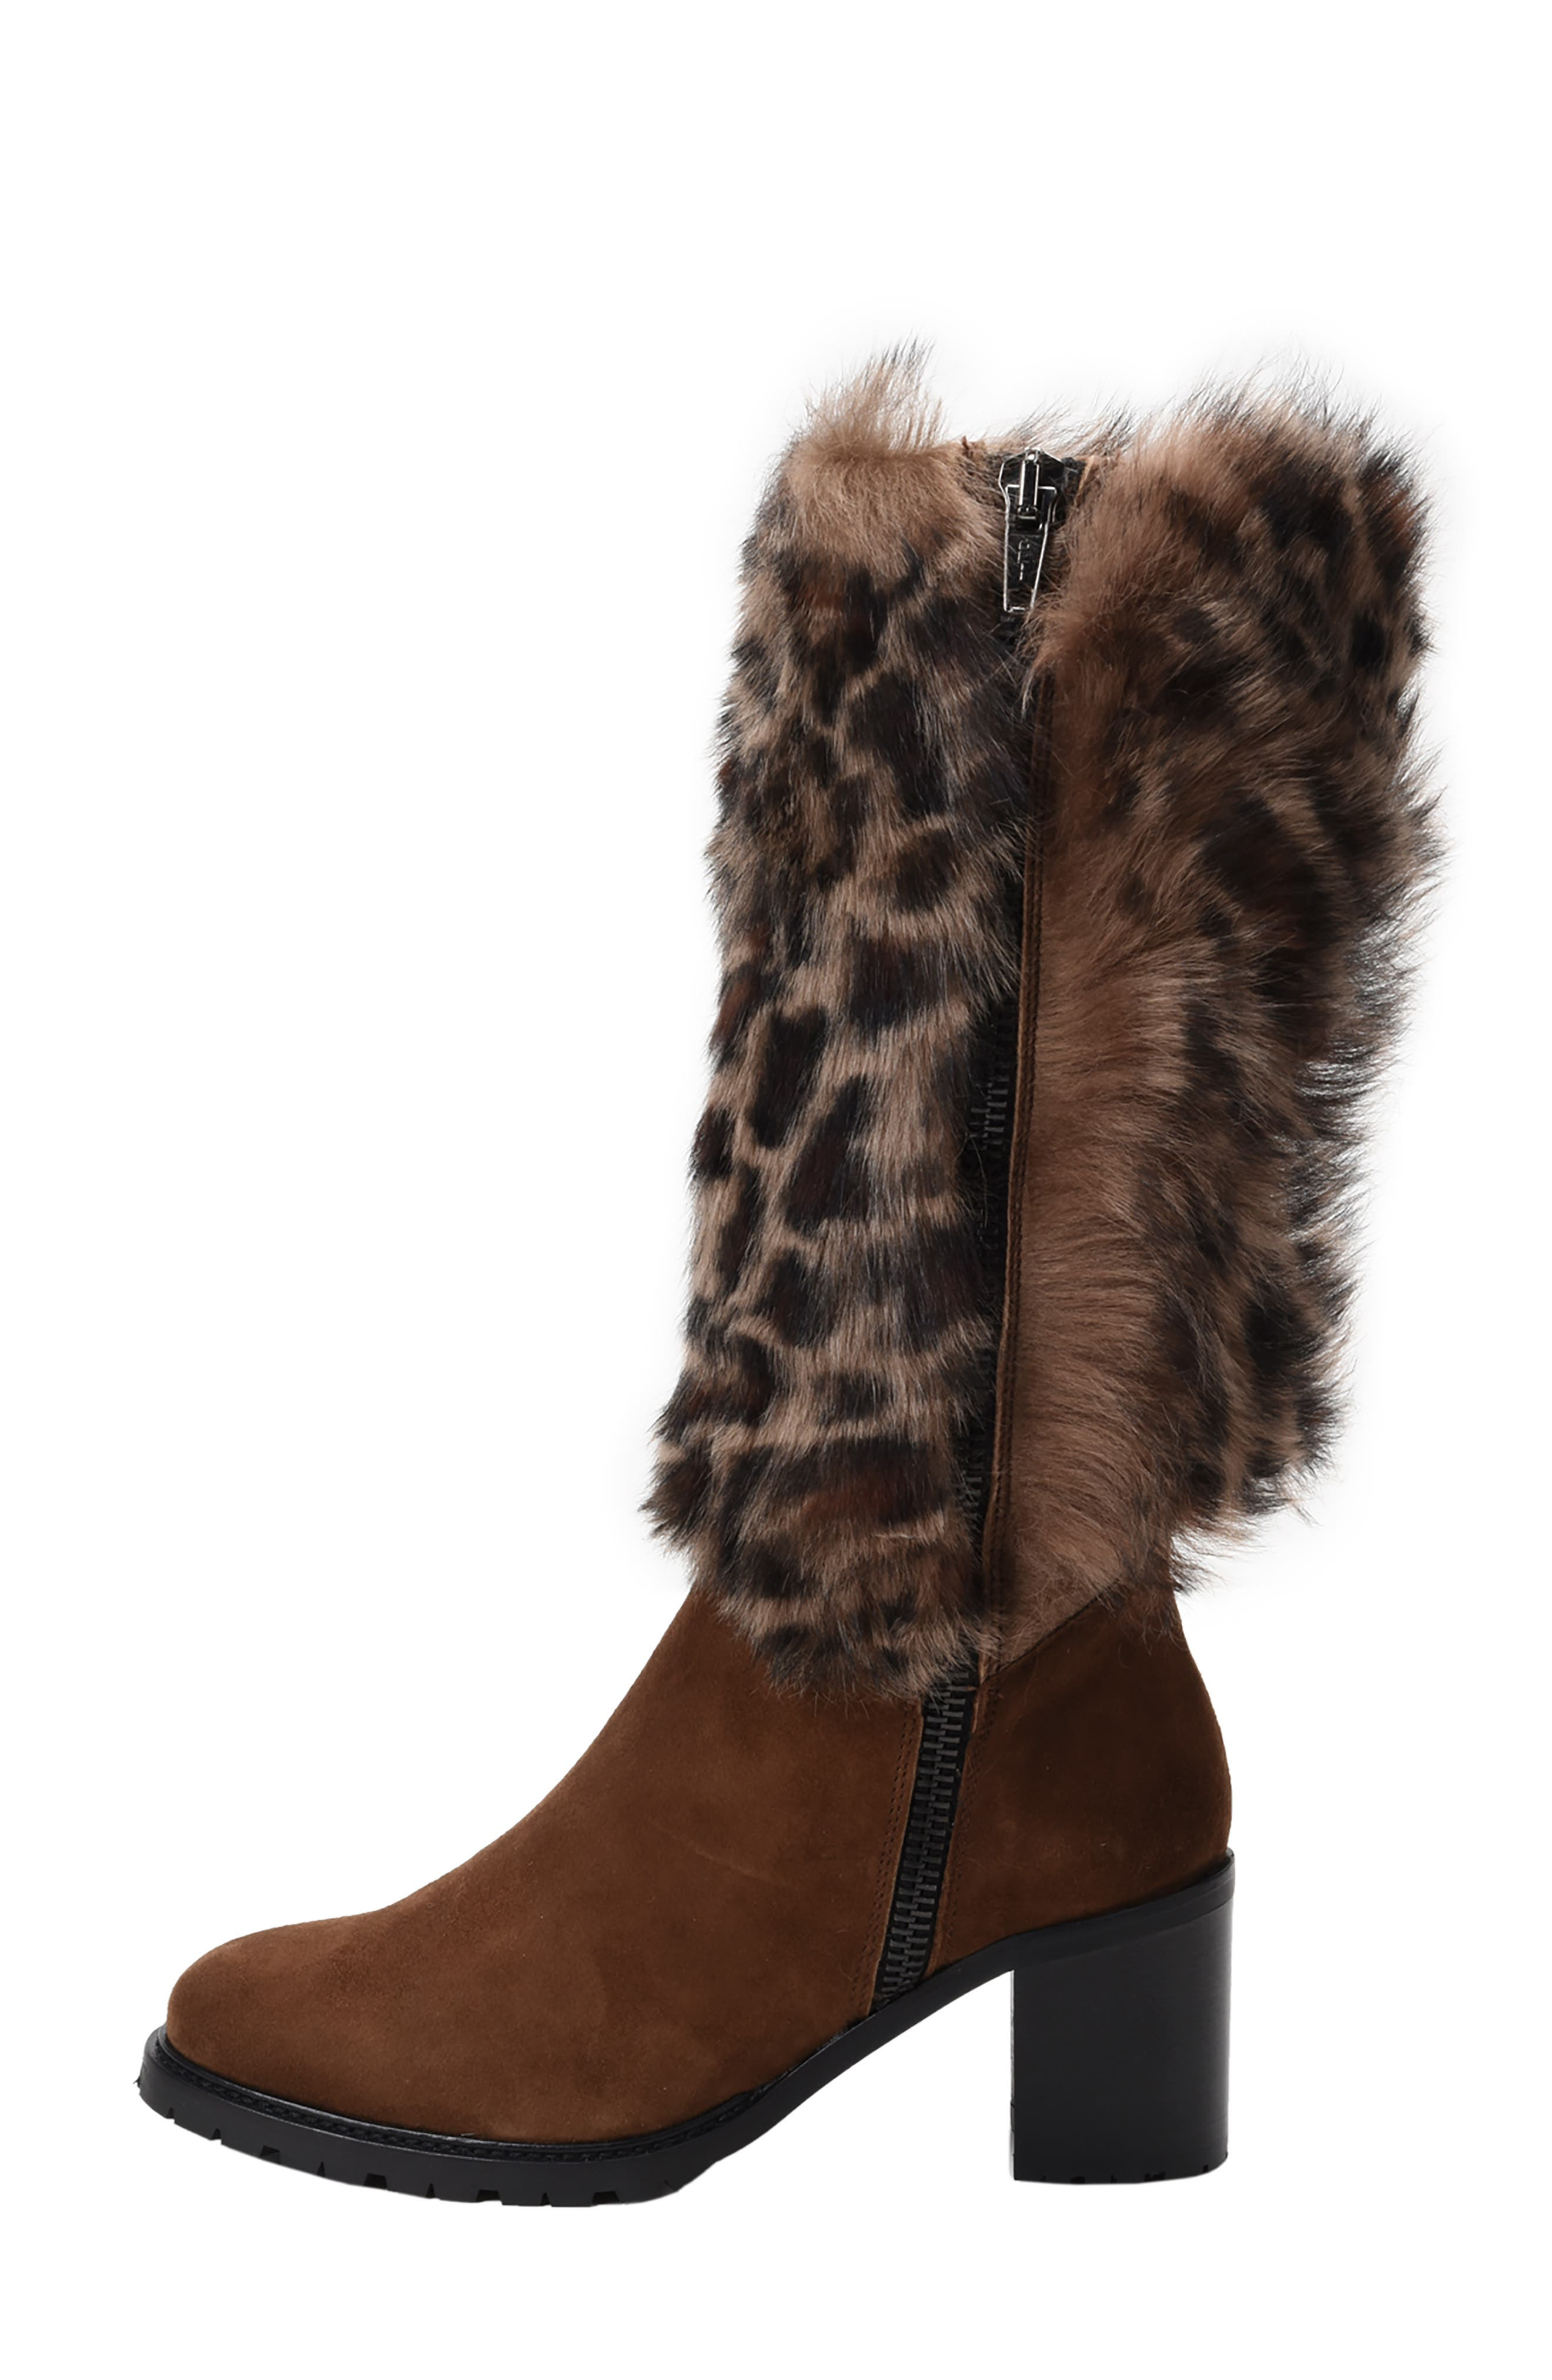 Weatherproof Genuine Shearling Boot,                             Alternate thumbnail 7, color,                             LEOPARD LEATHER